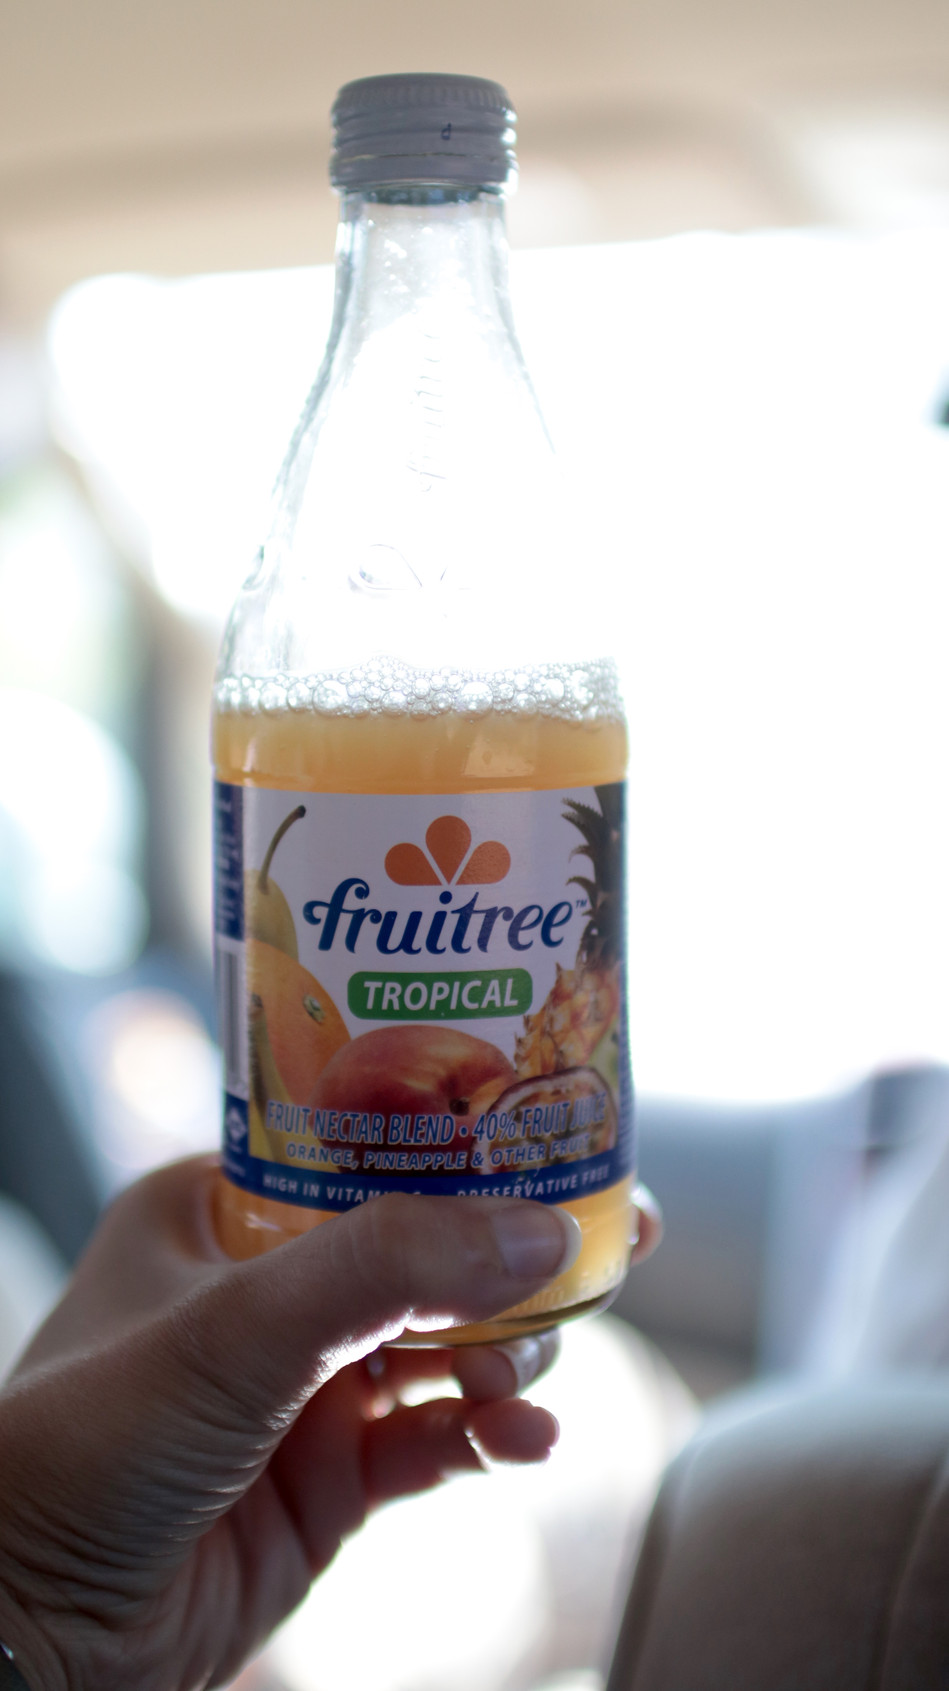 Fruitree - The fruit juice of choice for Josh on the journey!